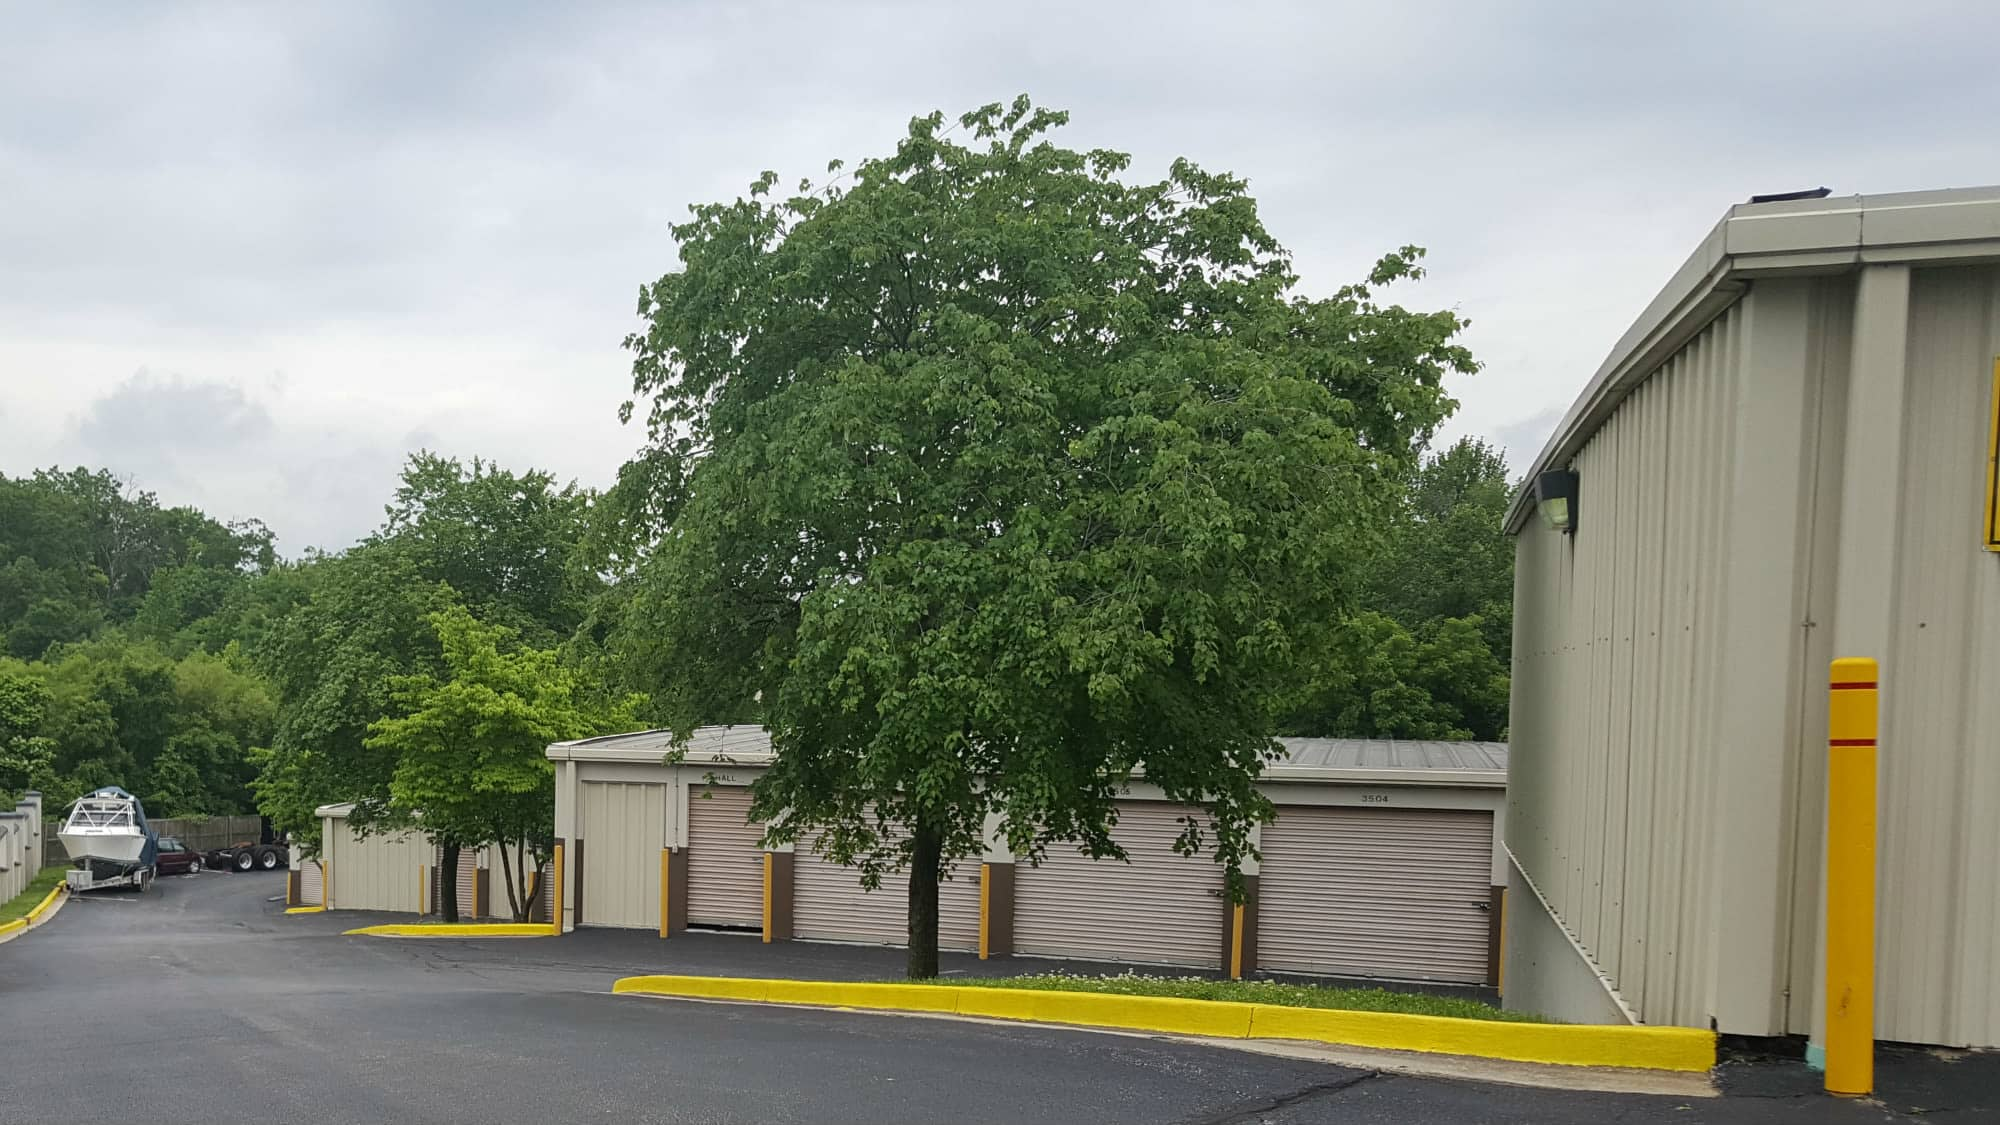 Tree at Seabrook Self Storage in Seabrook, Maryland